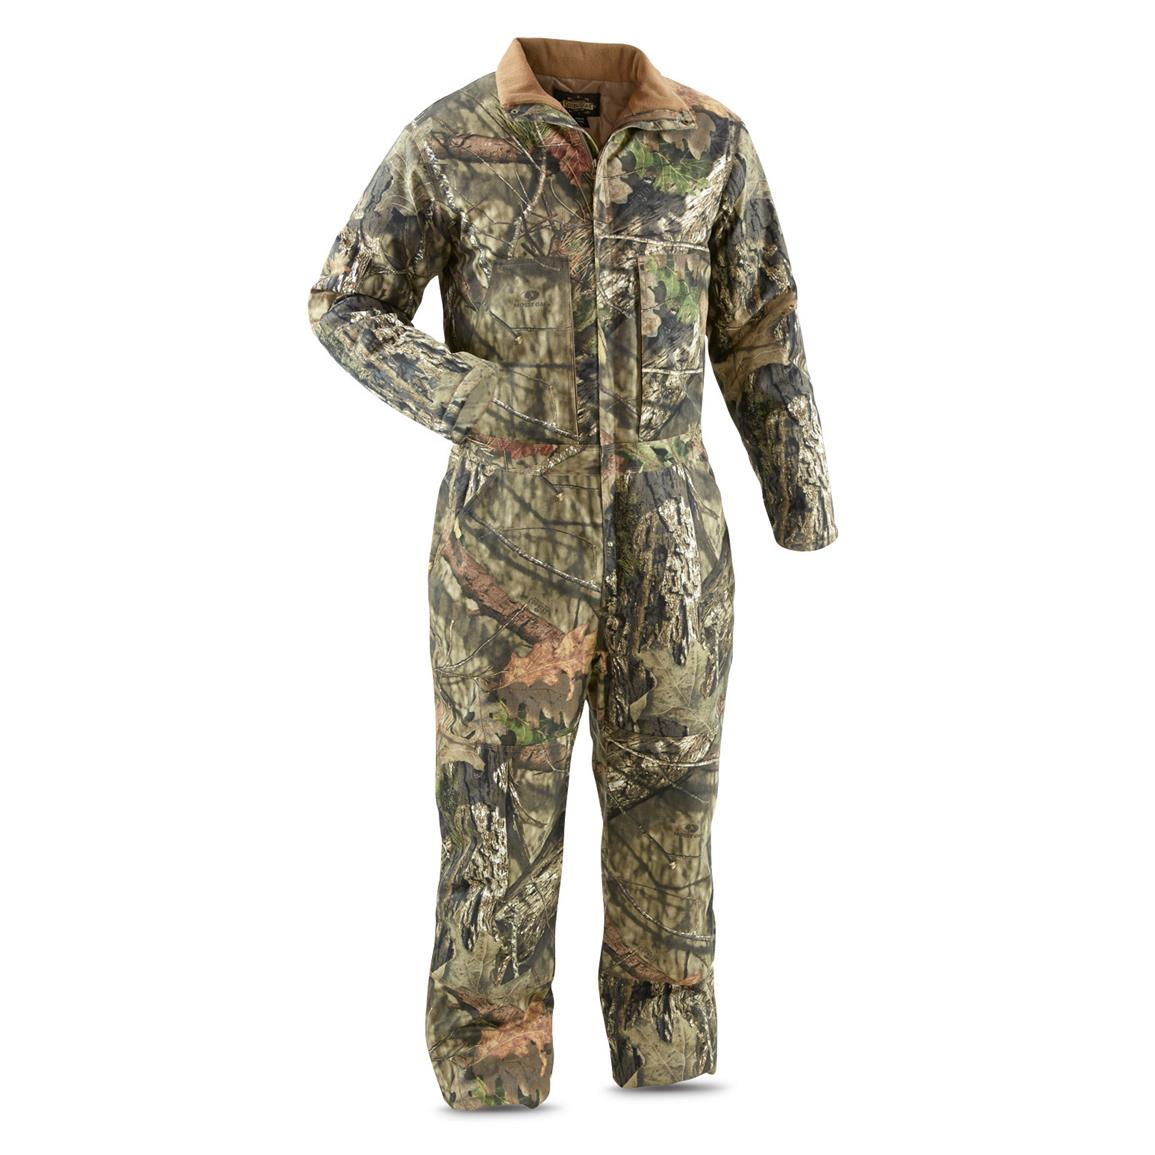 Guide Gear Men's Insulated Silent Adrenaline Hunting Coveralls, Mossy Oak Break-Up Country